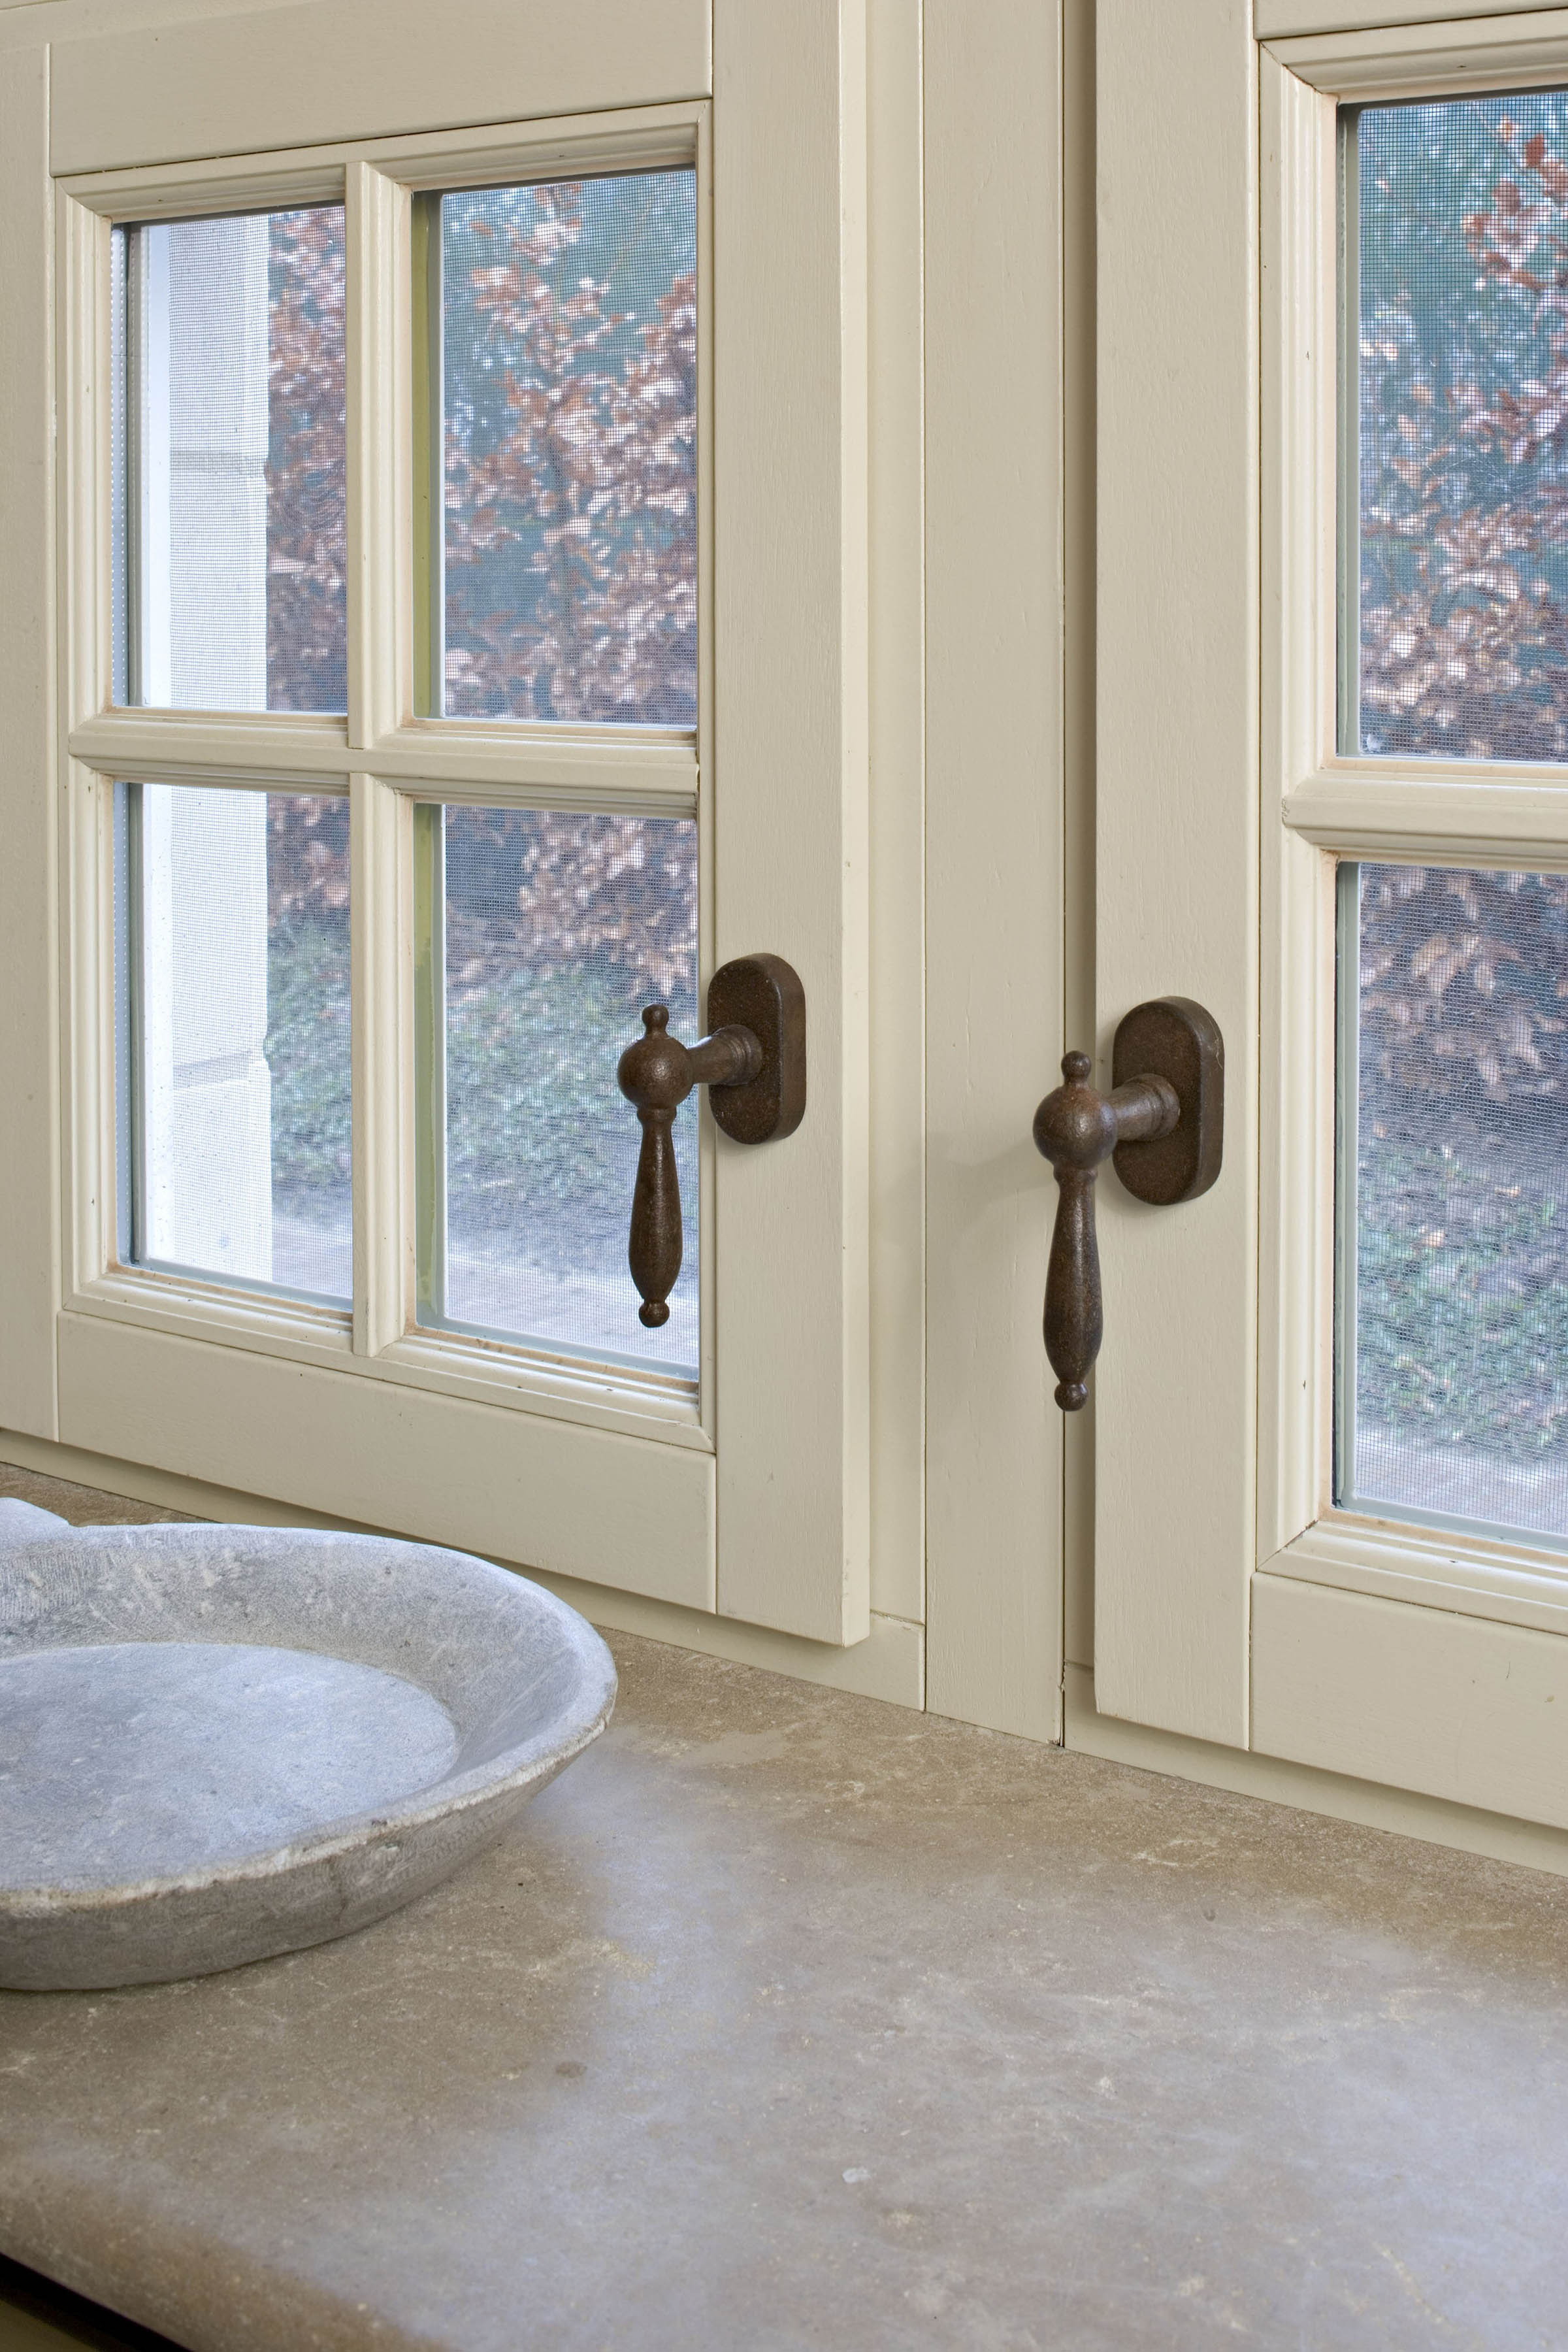 So Indulge Your Windows With The Finishing They Deserve Through Resistant And Stylish Country Style Window Ings